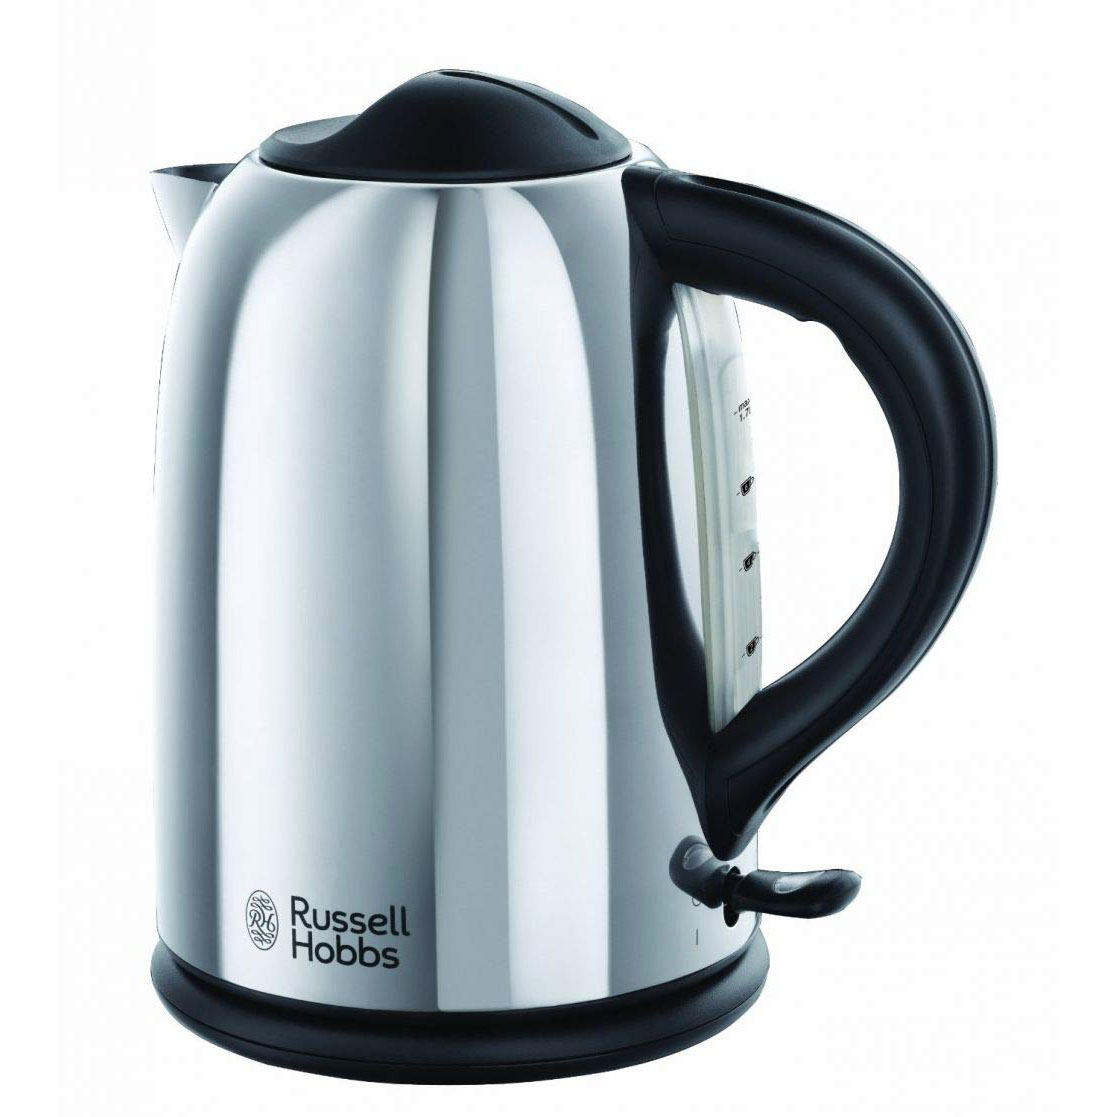 Russell Hobbs 20420 Chester Kettle 1.7L - Silver